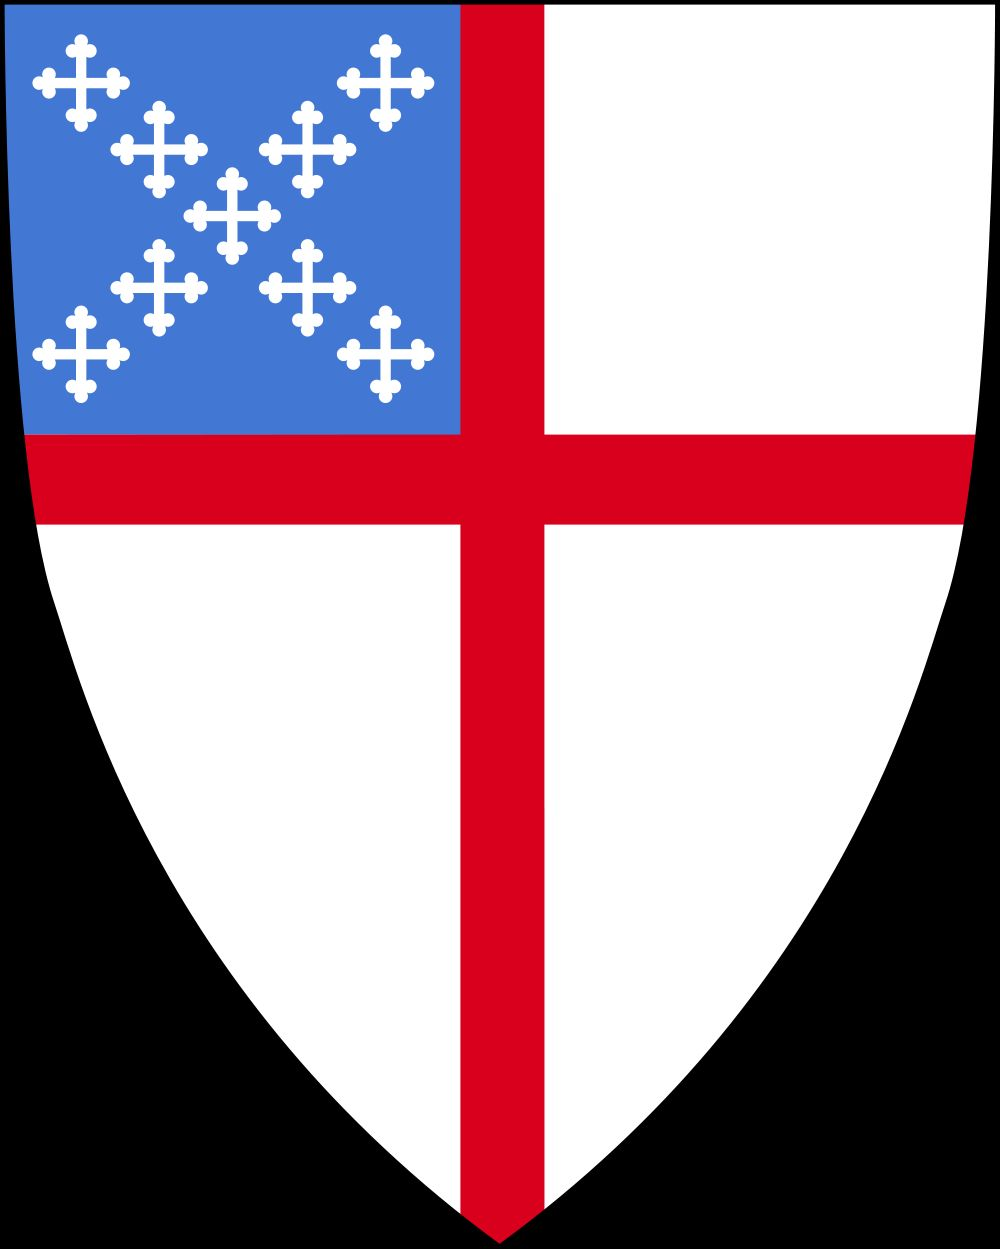 Episcopal Church Shield